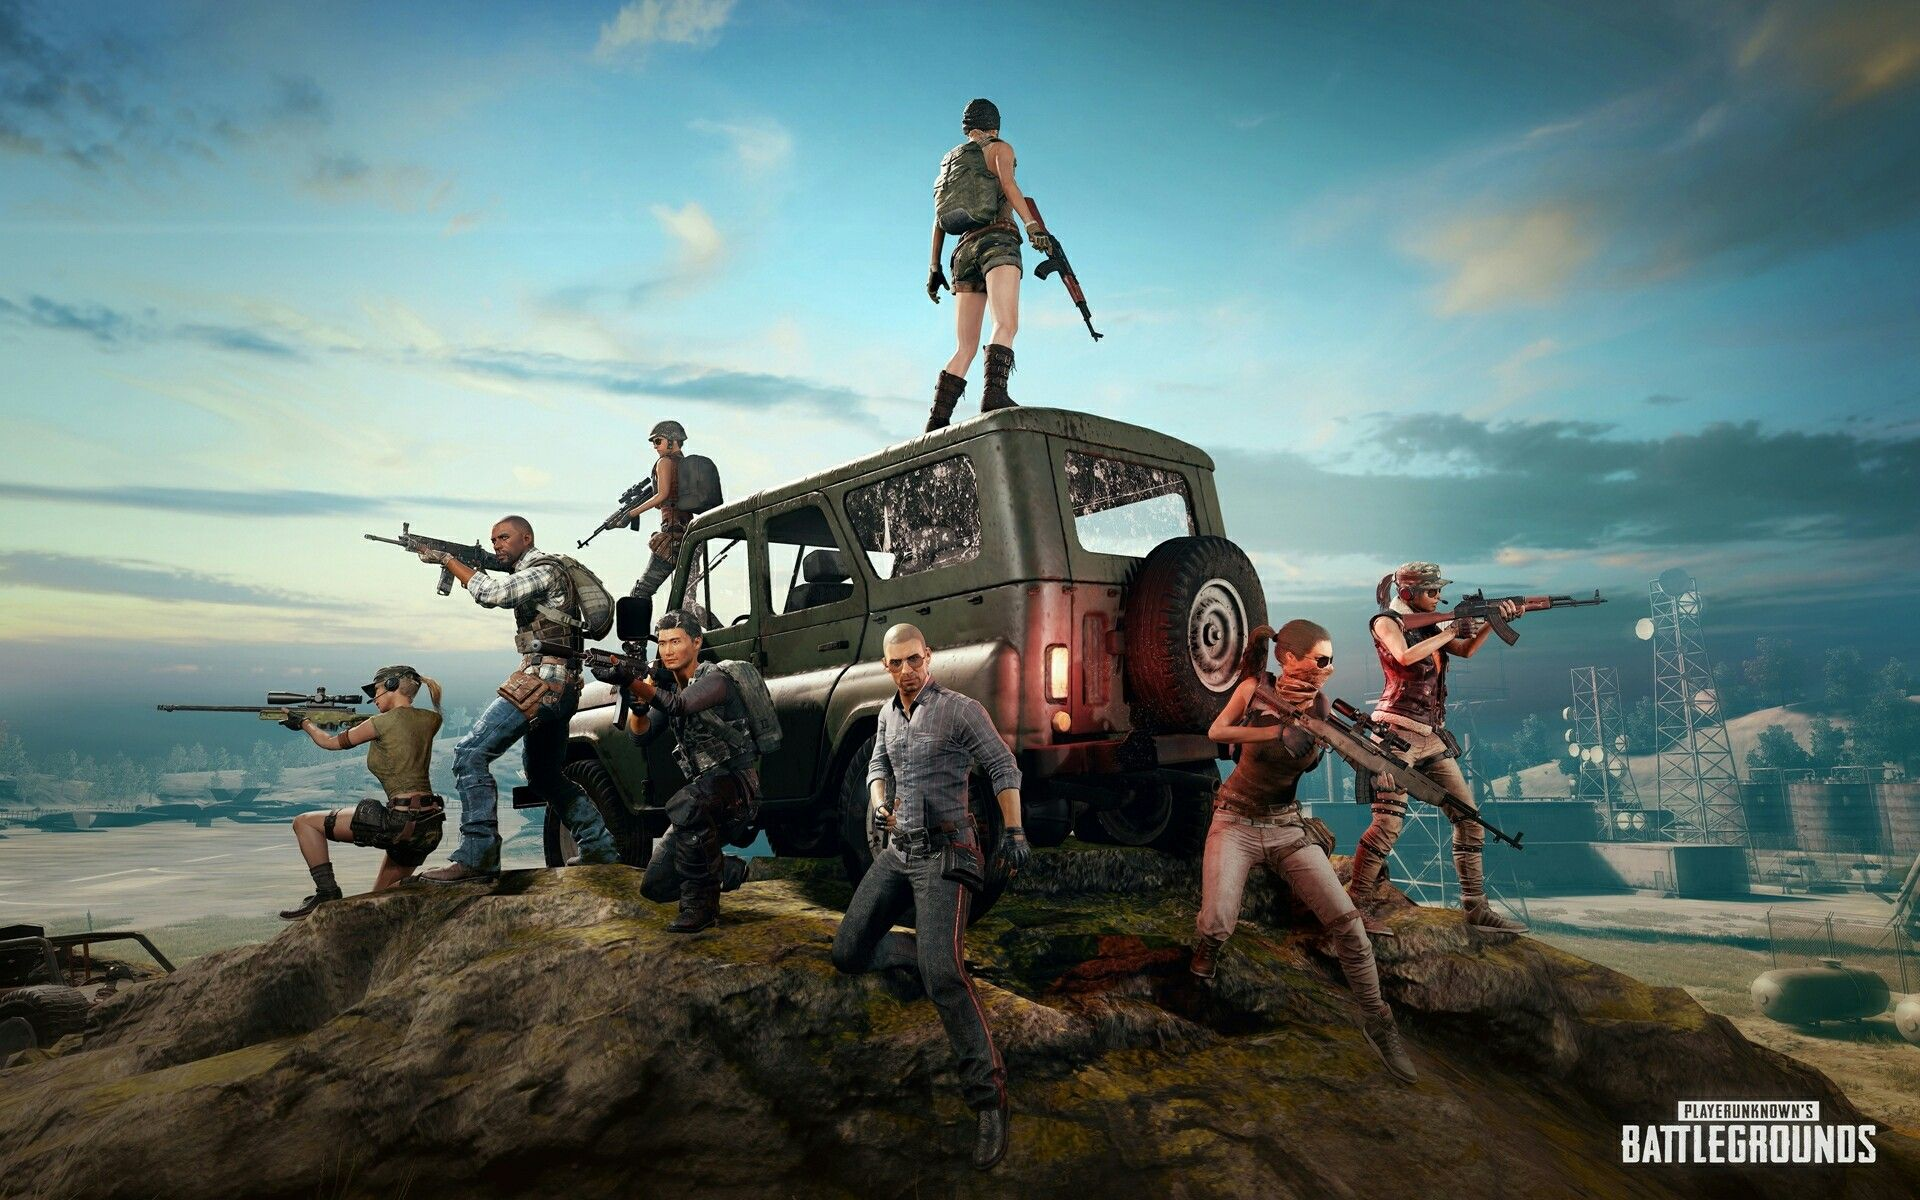 Pin By Punisher On Pubg Best Android Games 4k Wallpapers For Pc Hd Wallpapers For Pc